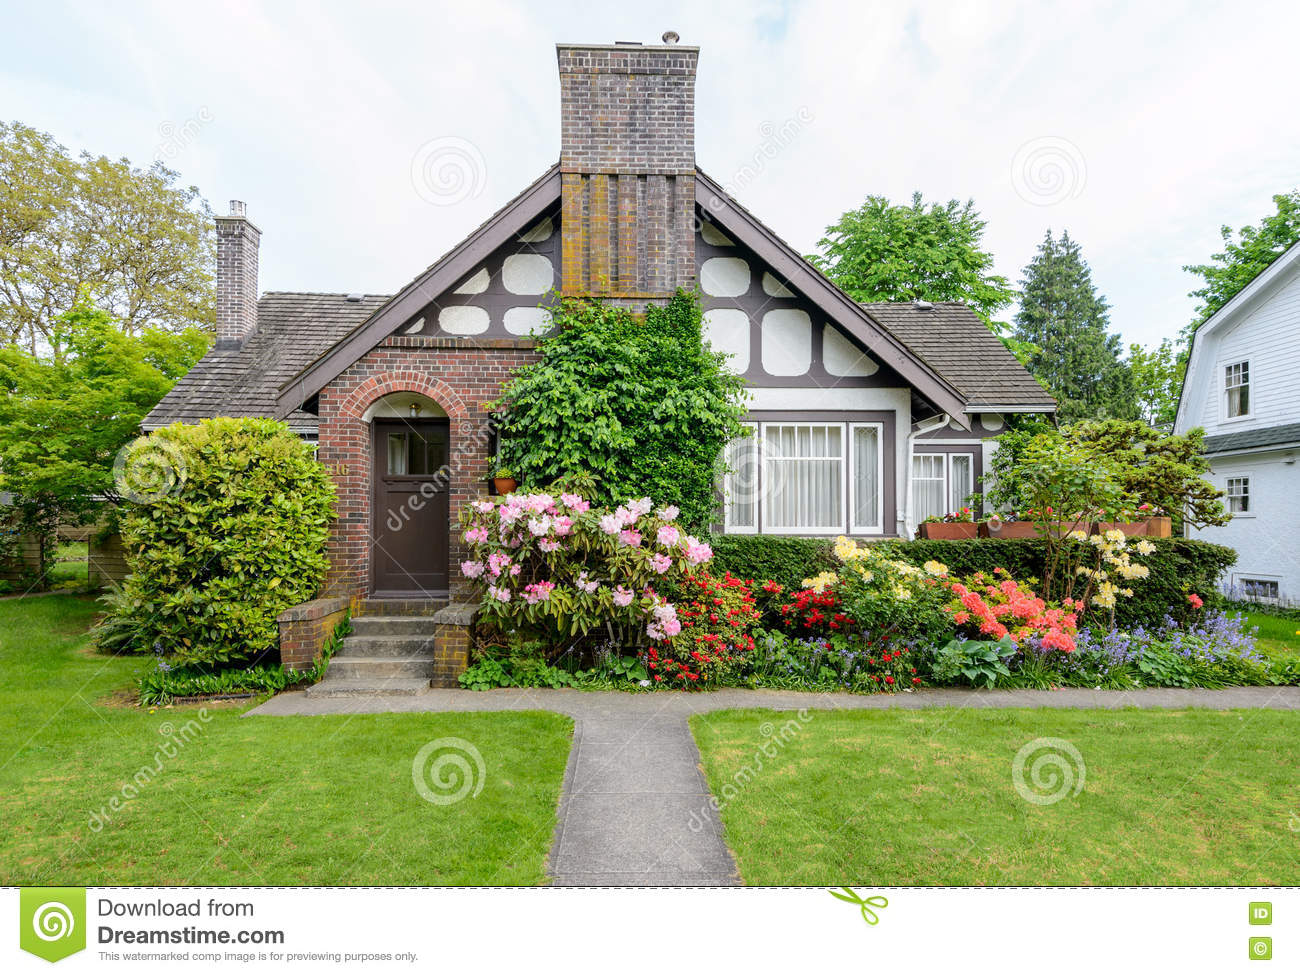 Cozy House Cozy House With A Beautiful Garden On A Sunny Day Stock Photo